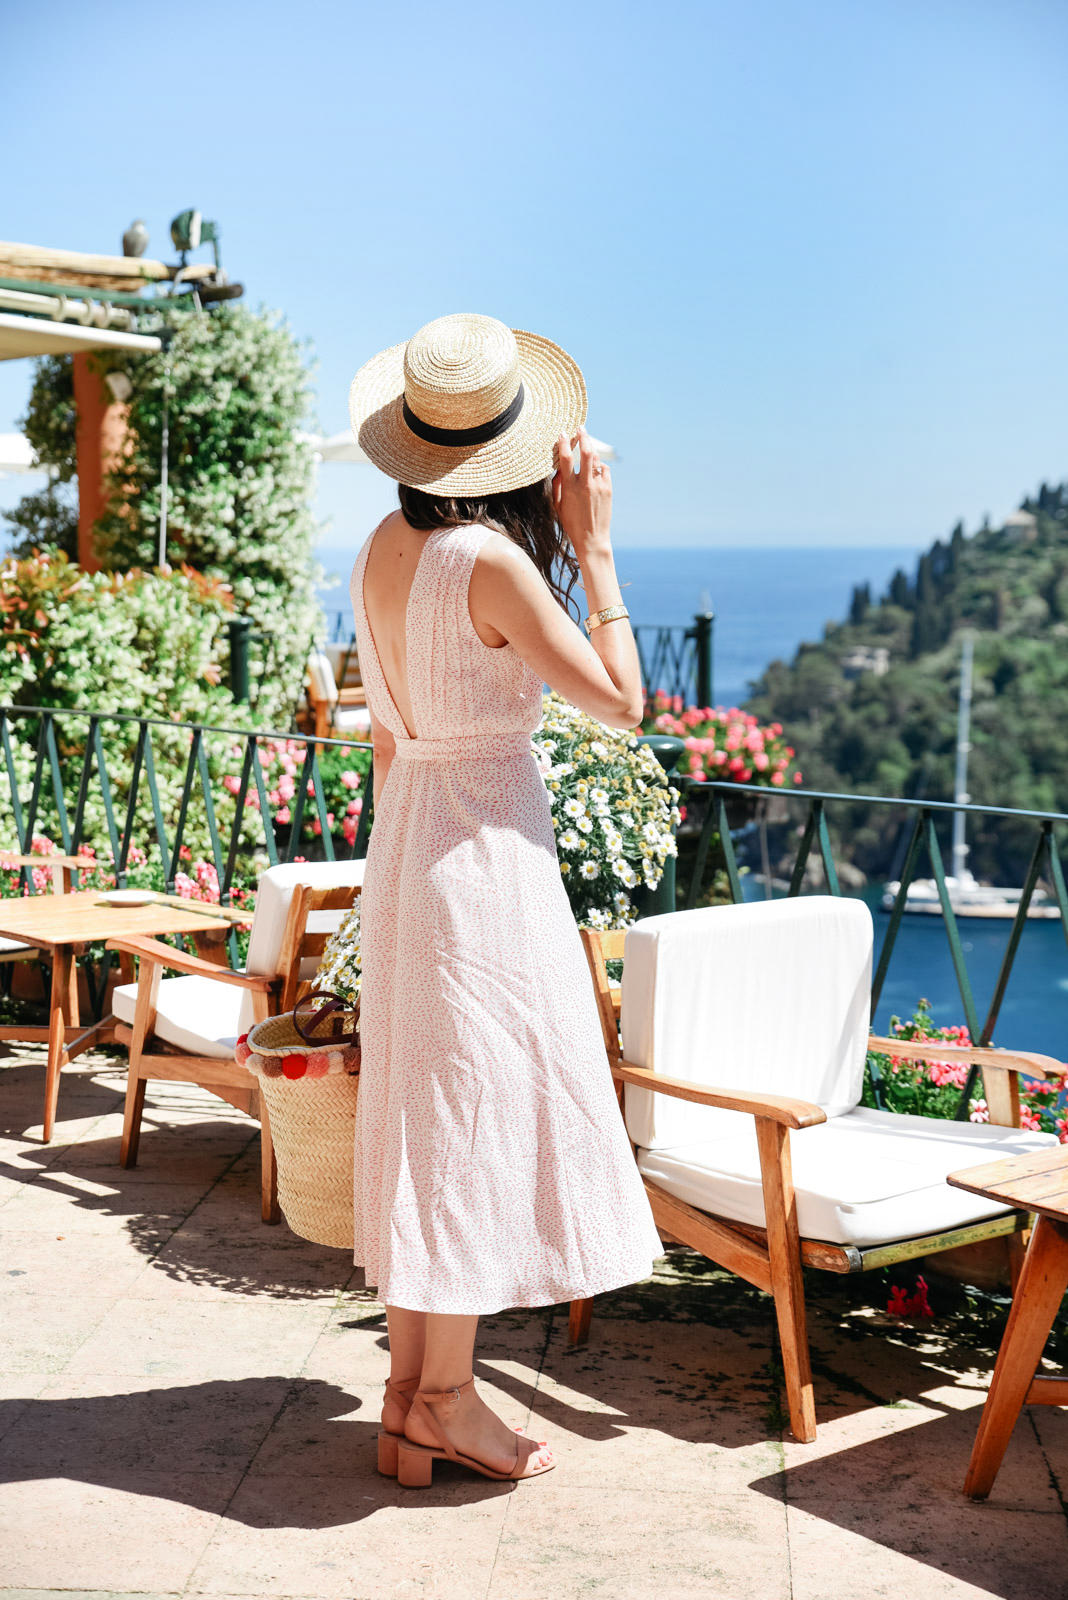 Blog-Mode-And-The-City-Lifestyle-Belmond-Hotel-3 copie